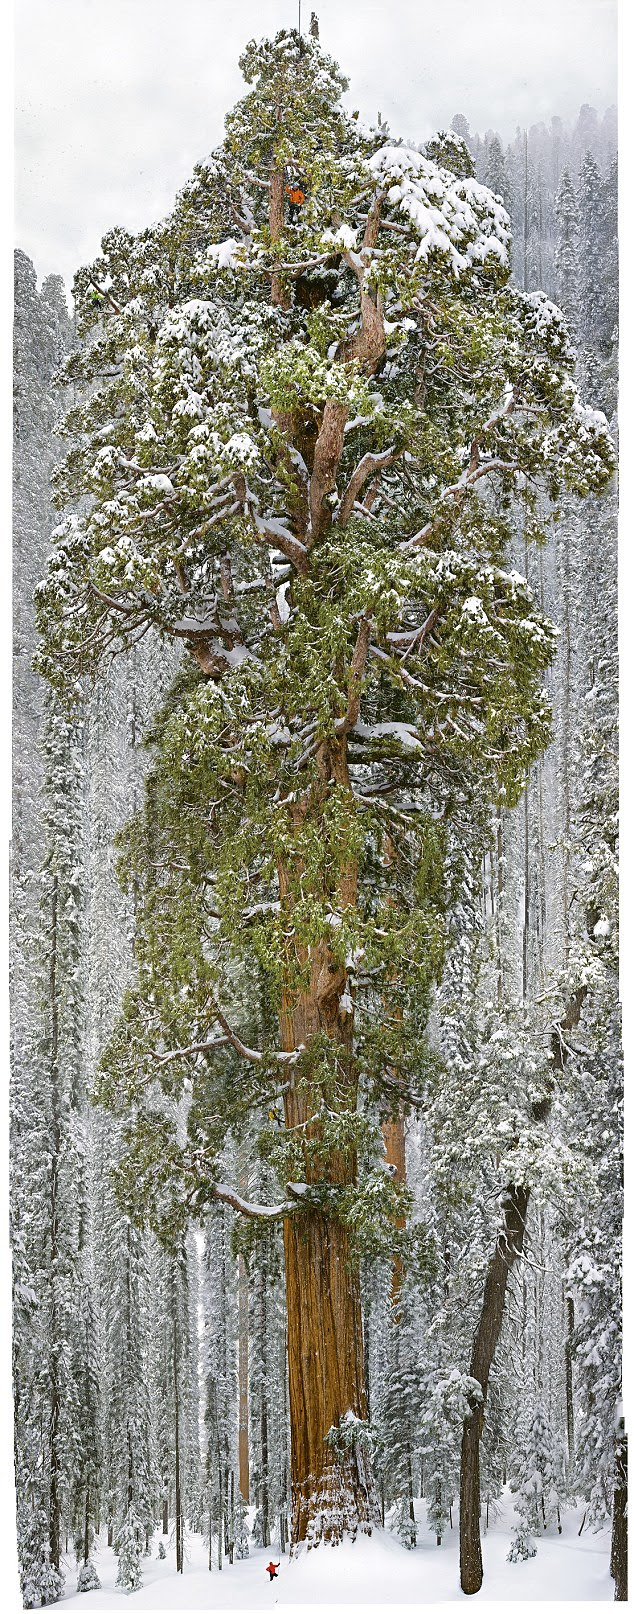 Un sequoia de plus de 3000 ans